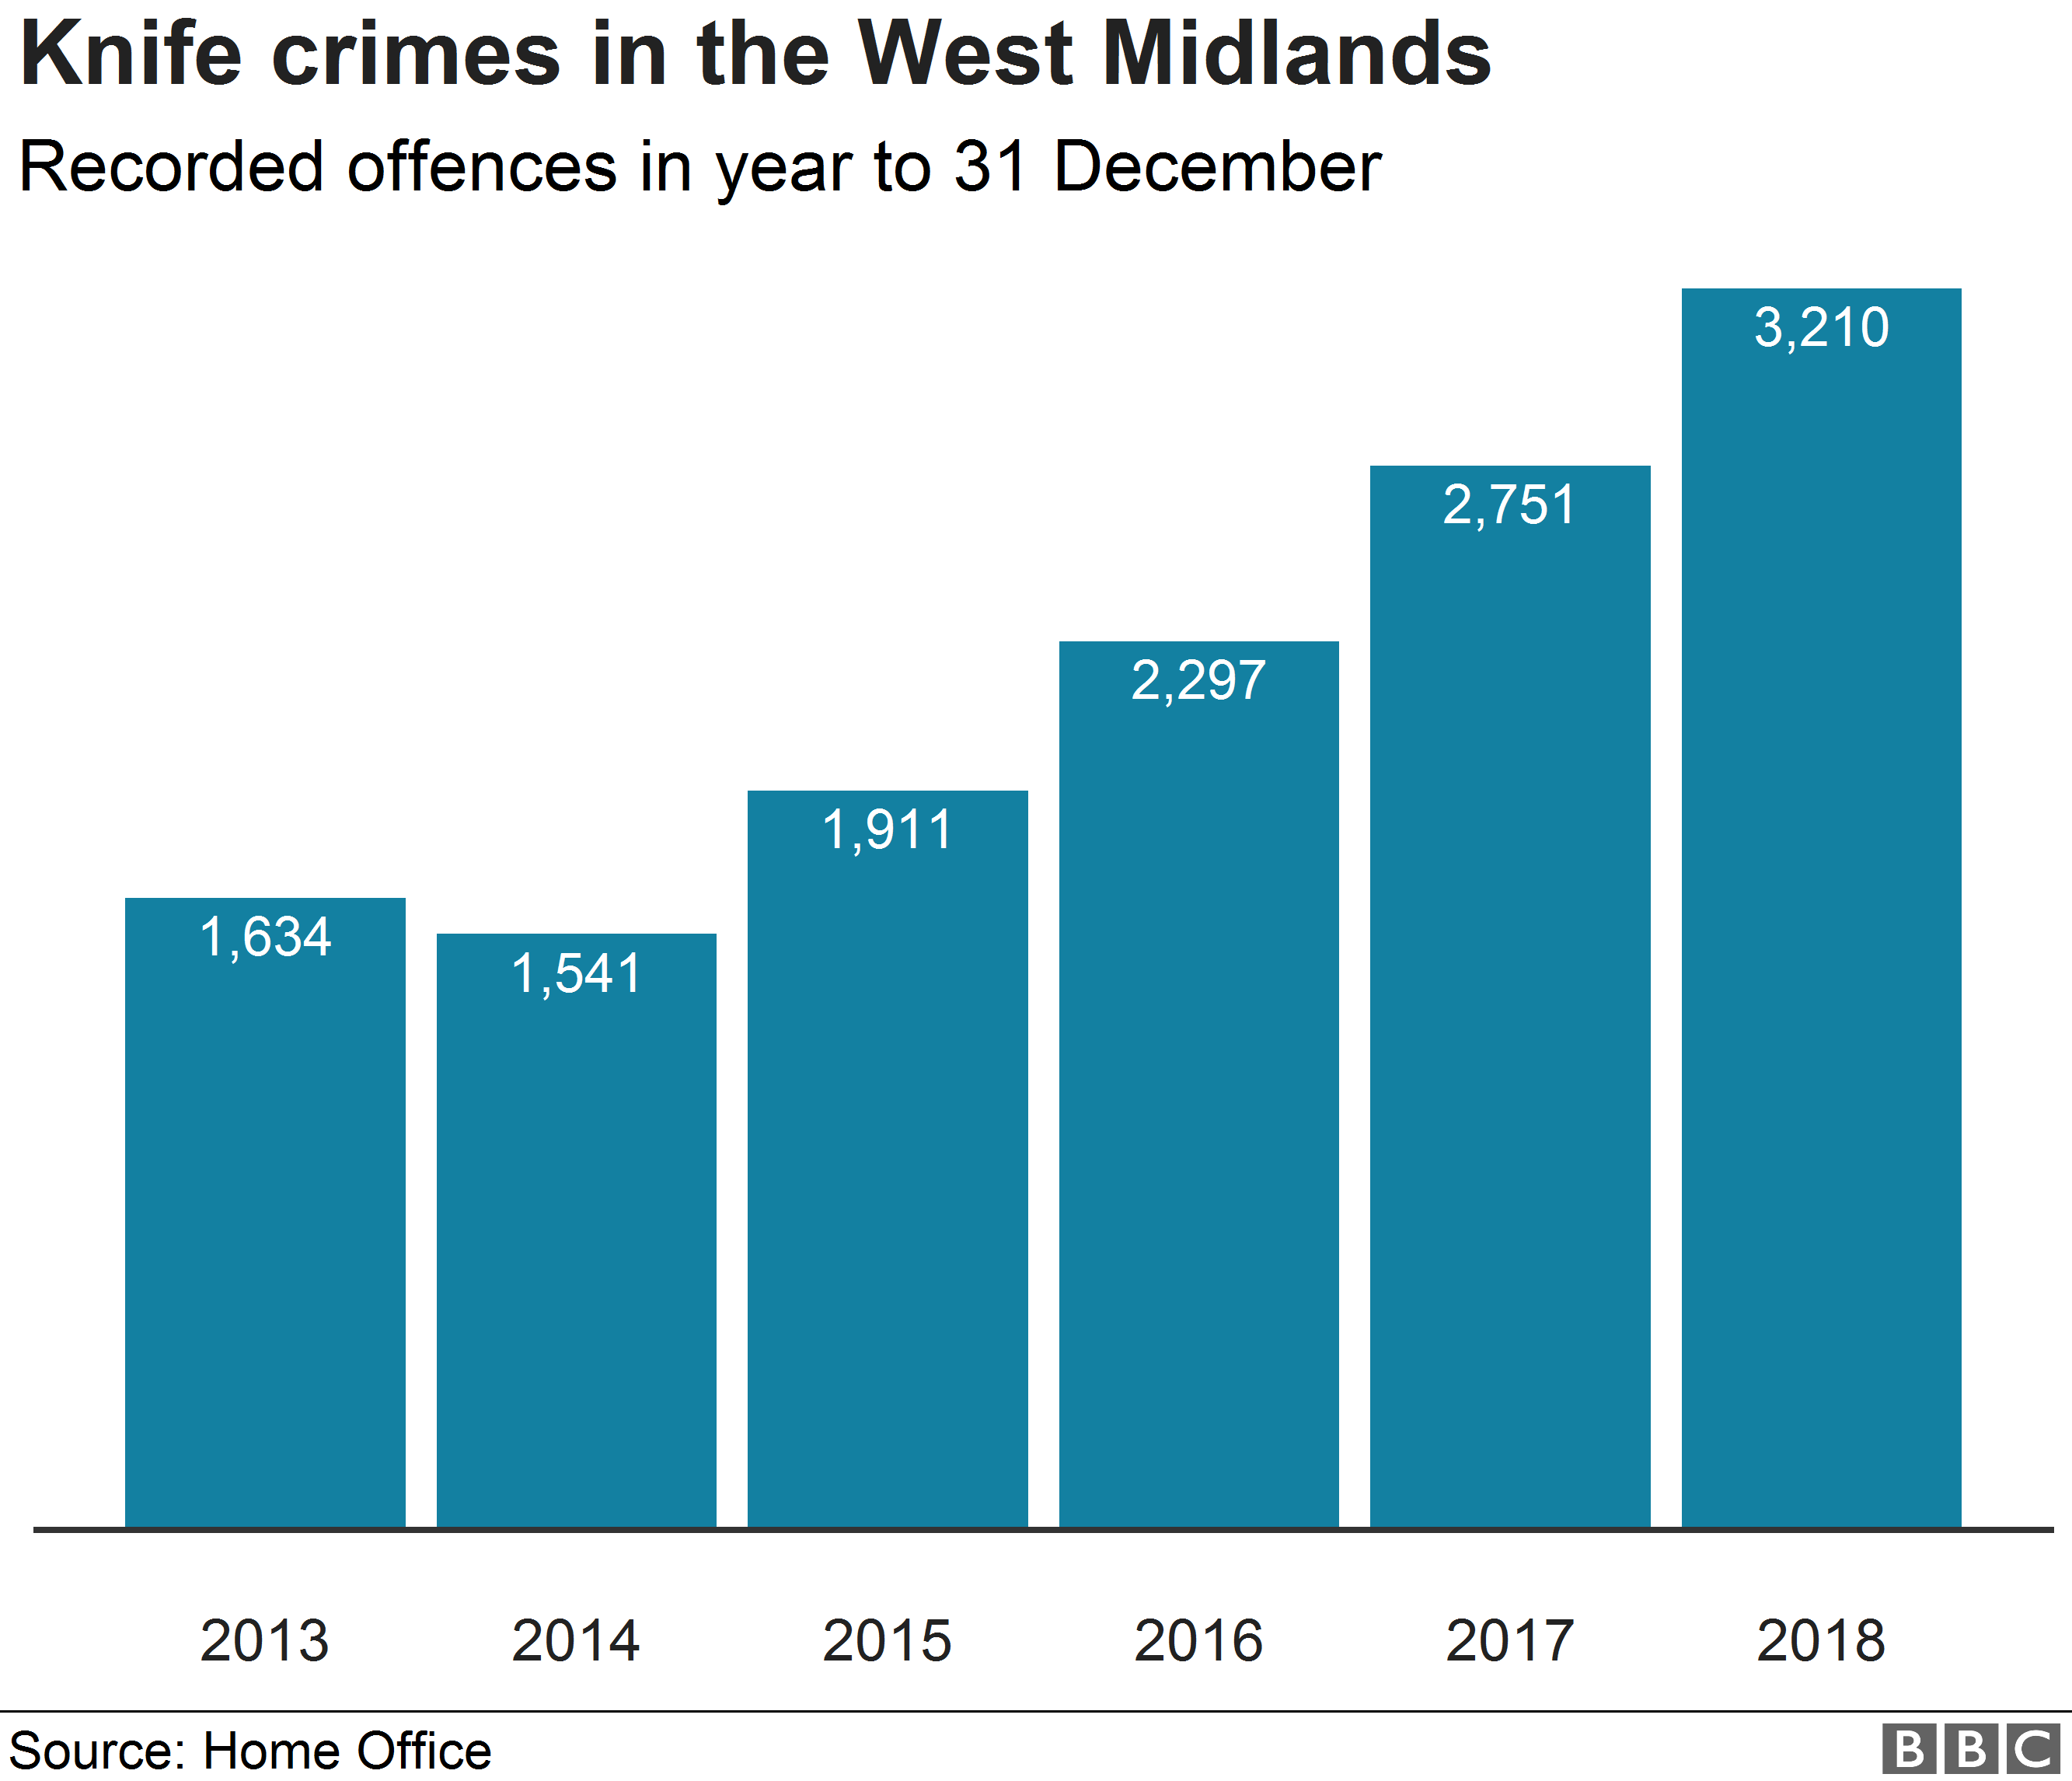 Chart showing increase in knife offences in the West Midlands